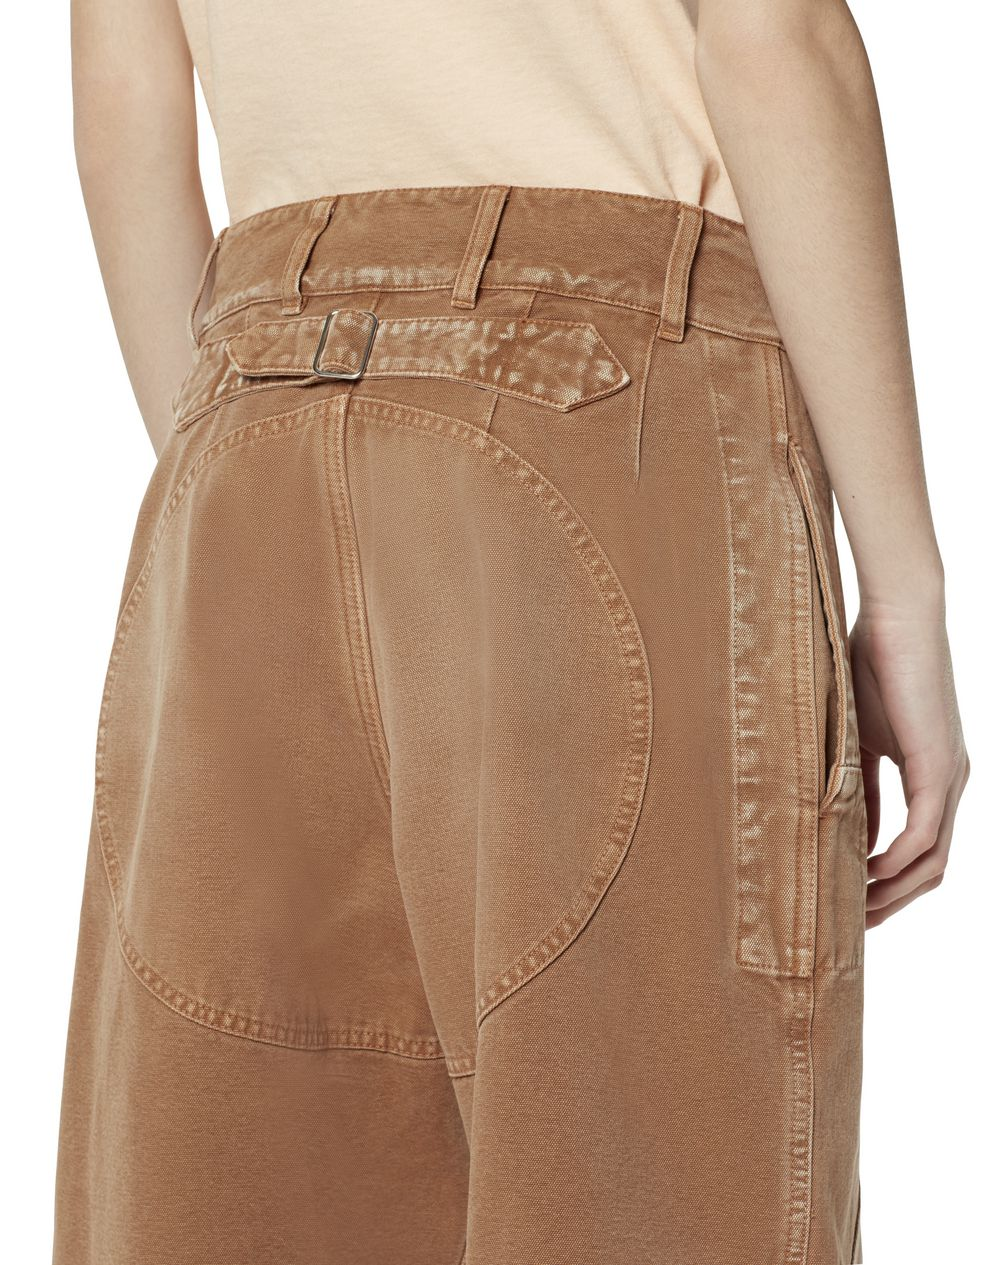 CROPPED DENIM PANTS - Lanvin